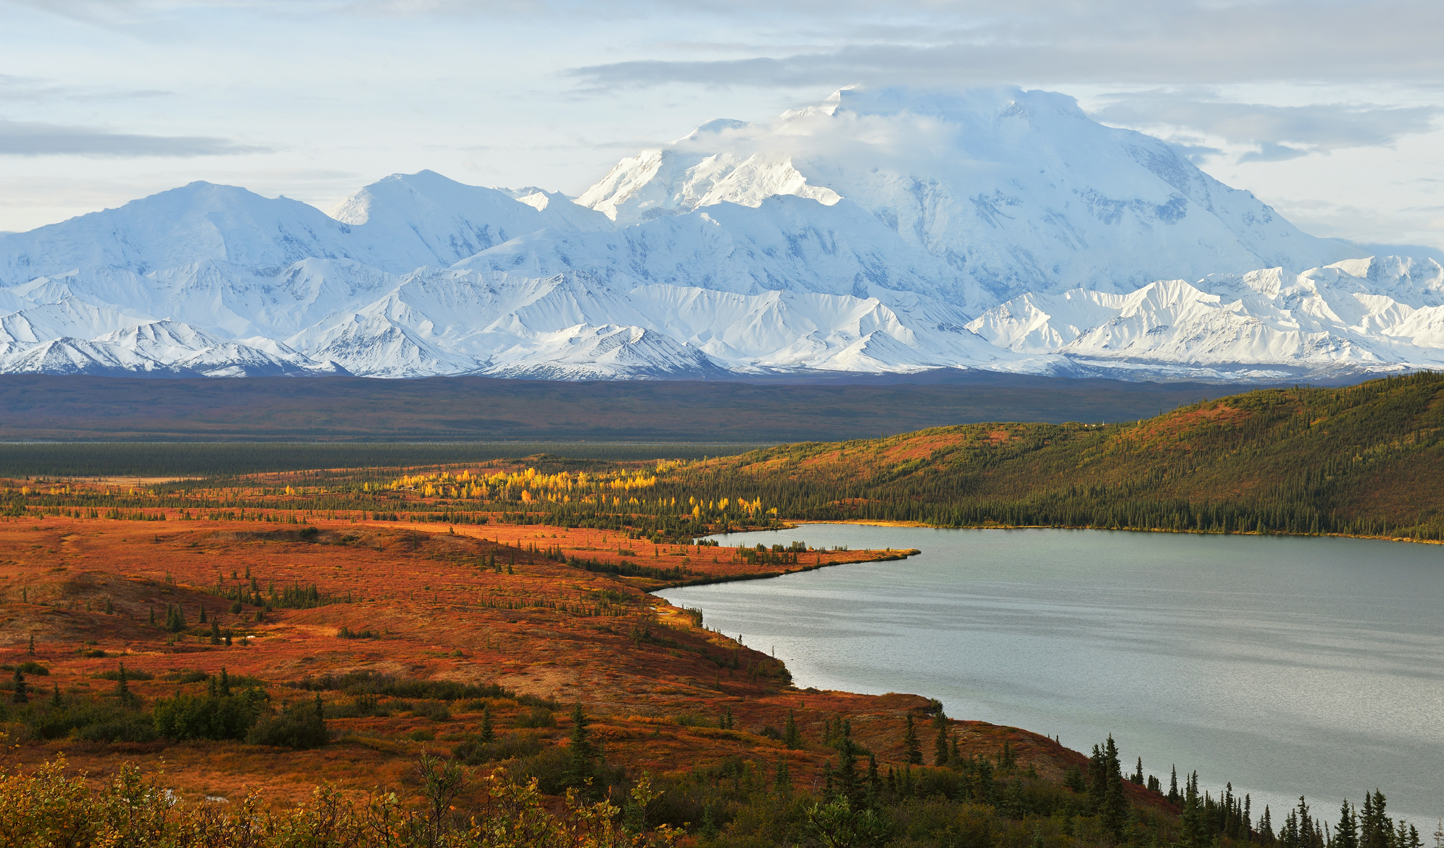 The impressive sight of Mt. McKinley is unavoidable